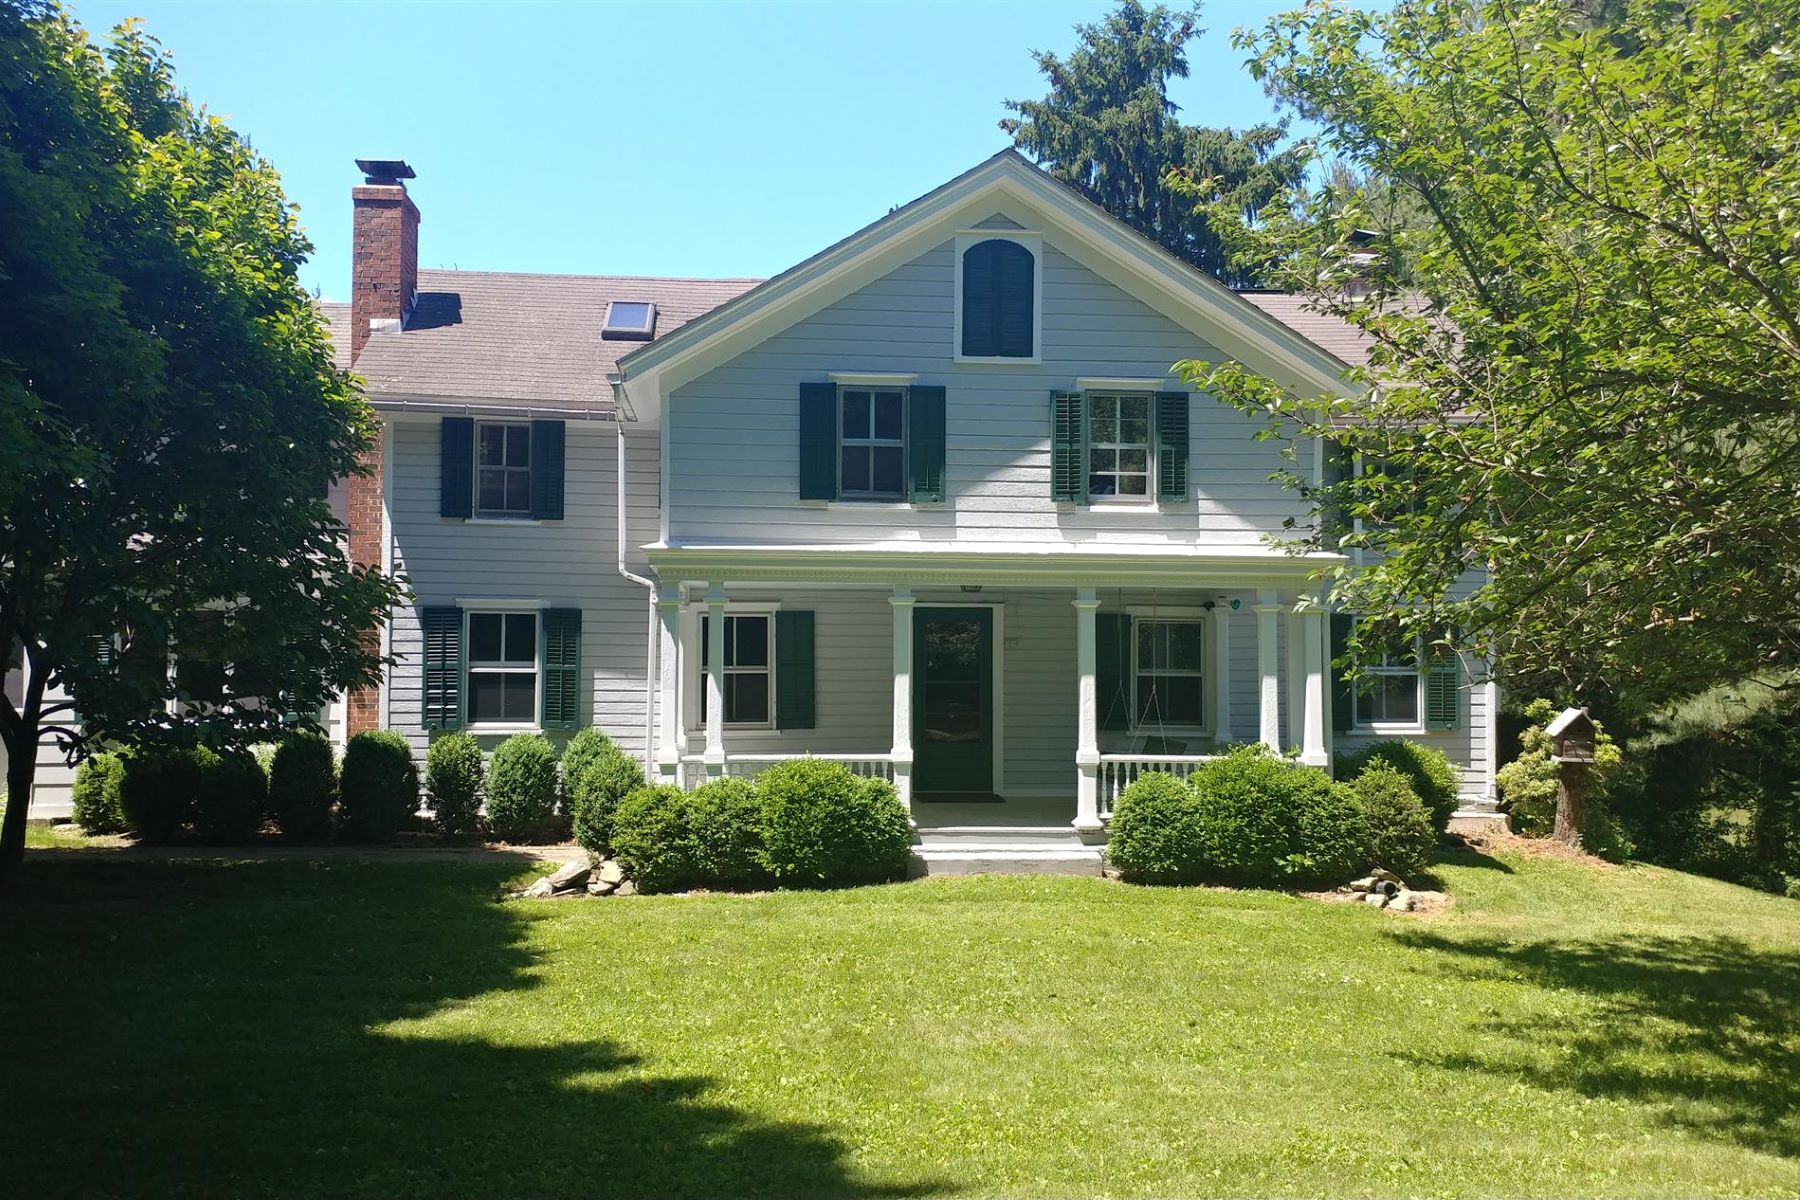 Single Family Homes for Active at Hitchcock Farm 3143 Route 9G Rhinebeck, New York 12572 United States